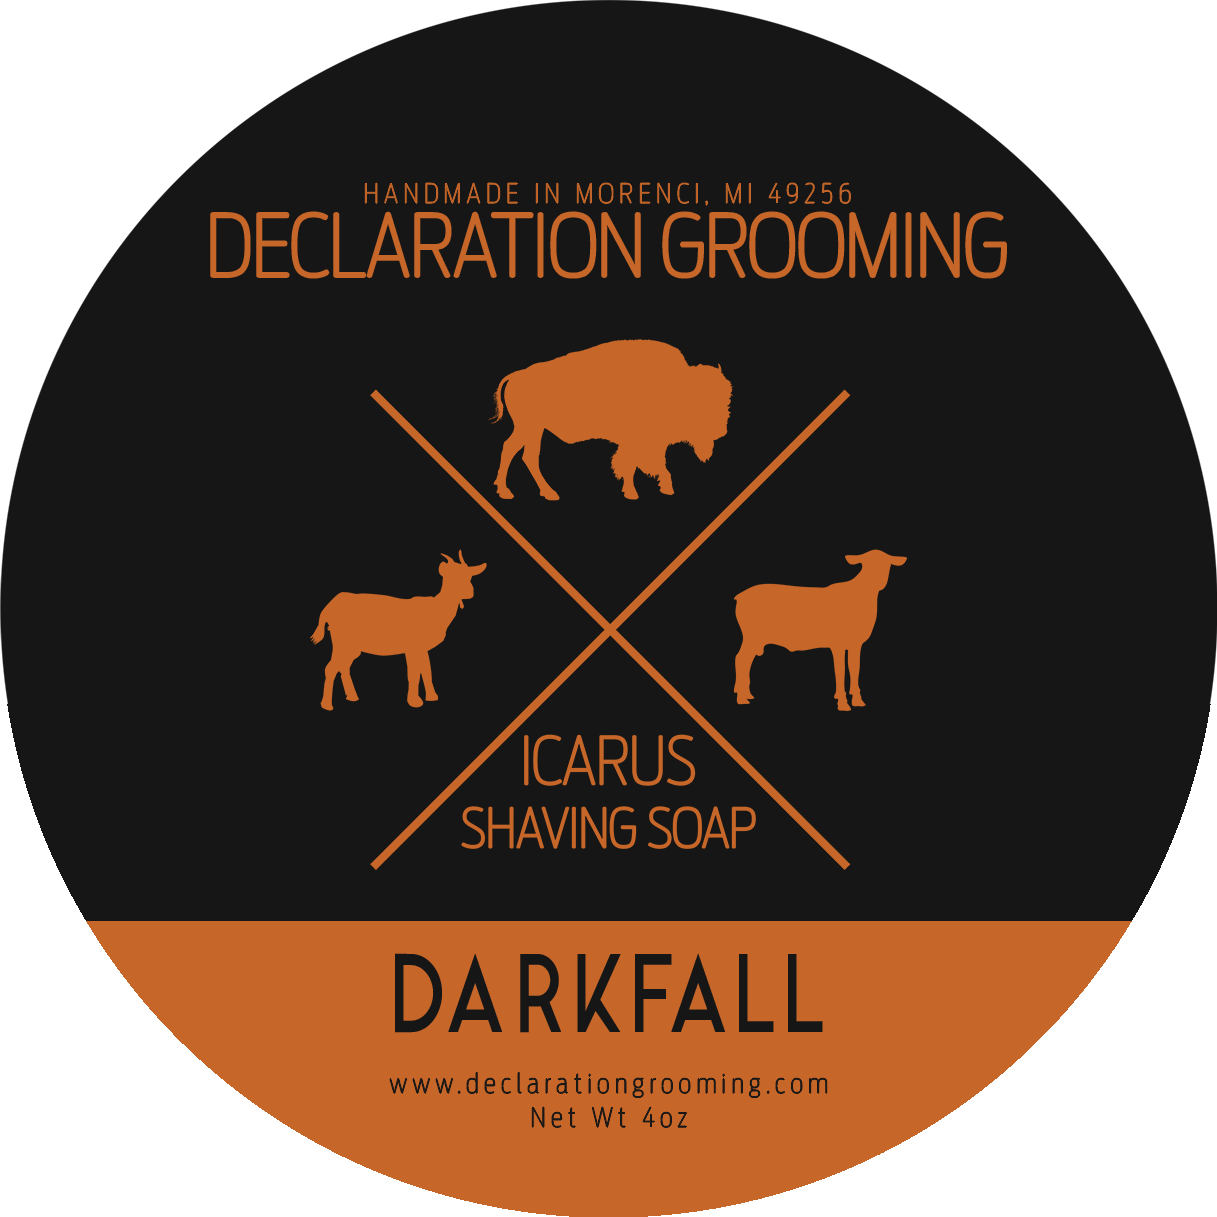 Declaration Grooming - Declaration Grooming - Darkfall - Soap image